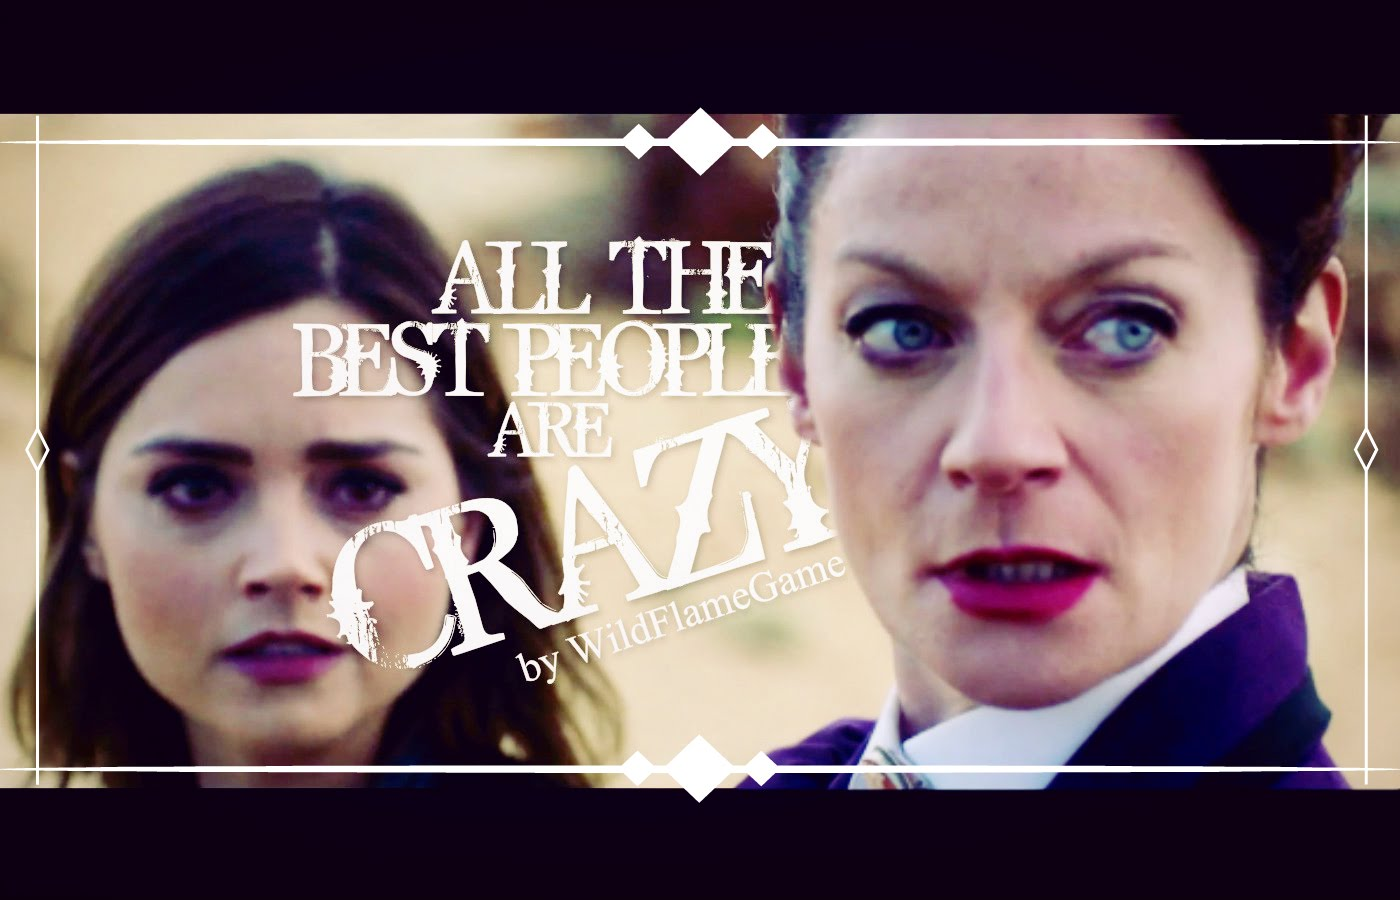 Video of the Day: A Doctor Who Fan Video, 'All The Best People Are Crazy'